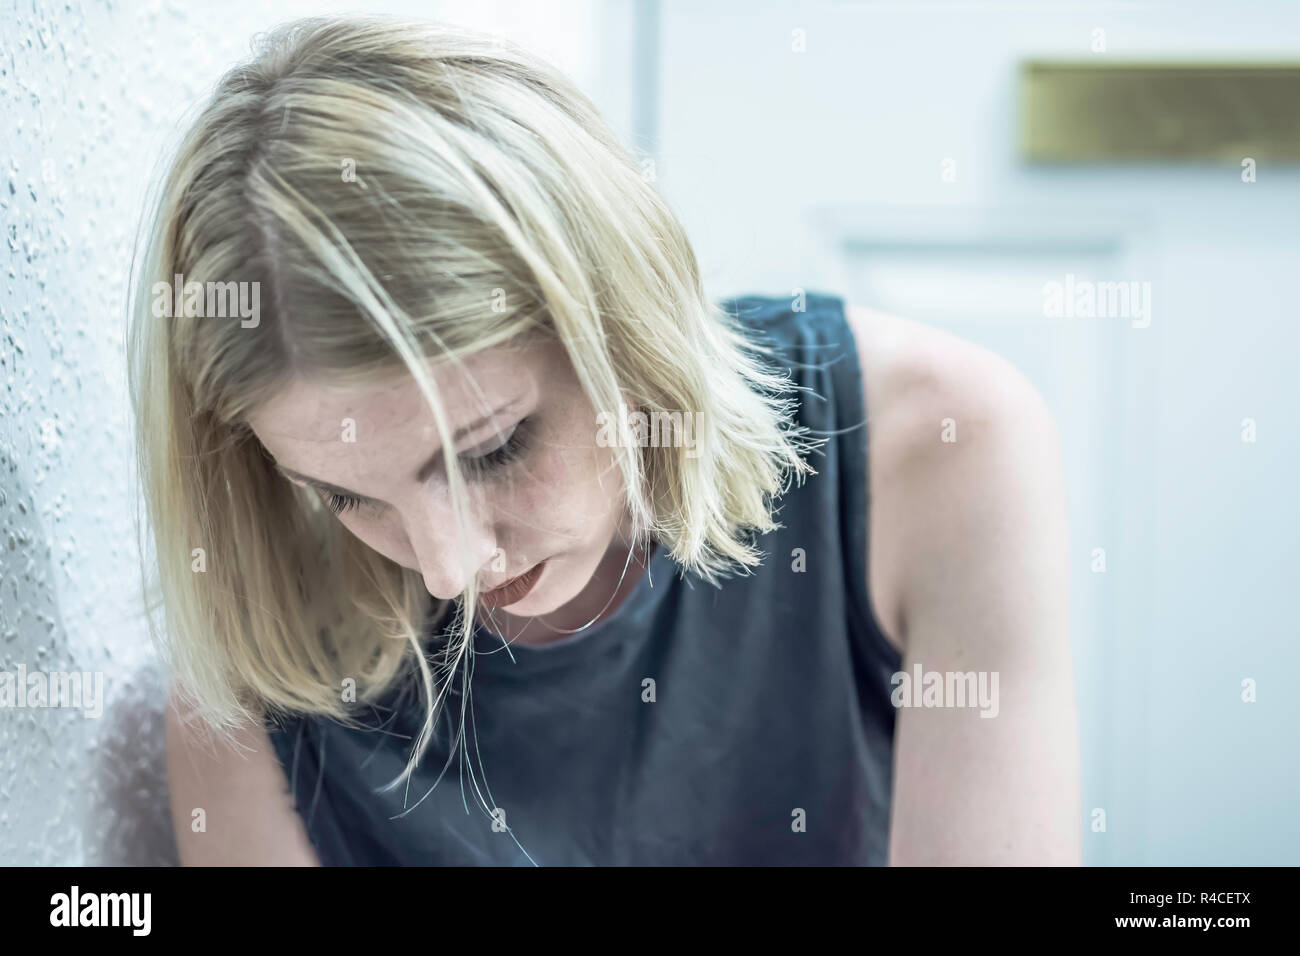 High key soft portrait of young woman looking down expressing sadness or melancholy.Natural lighting and authentic look.Blurred door in background. - Stock Image